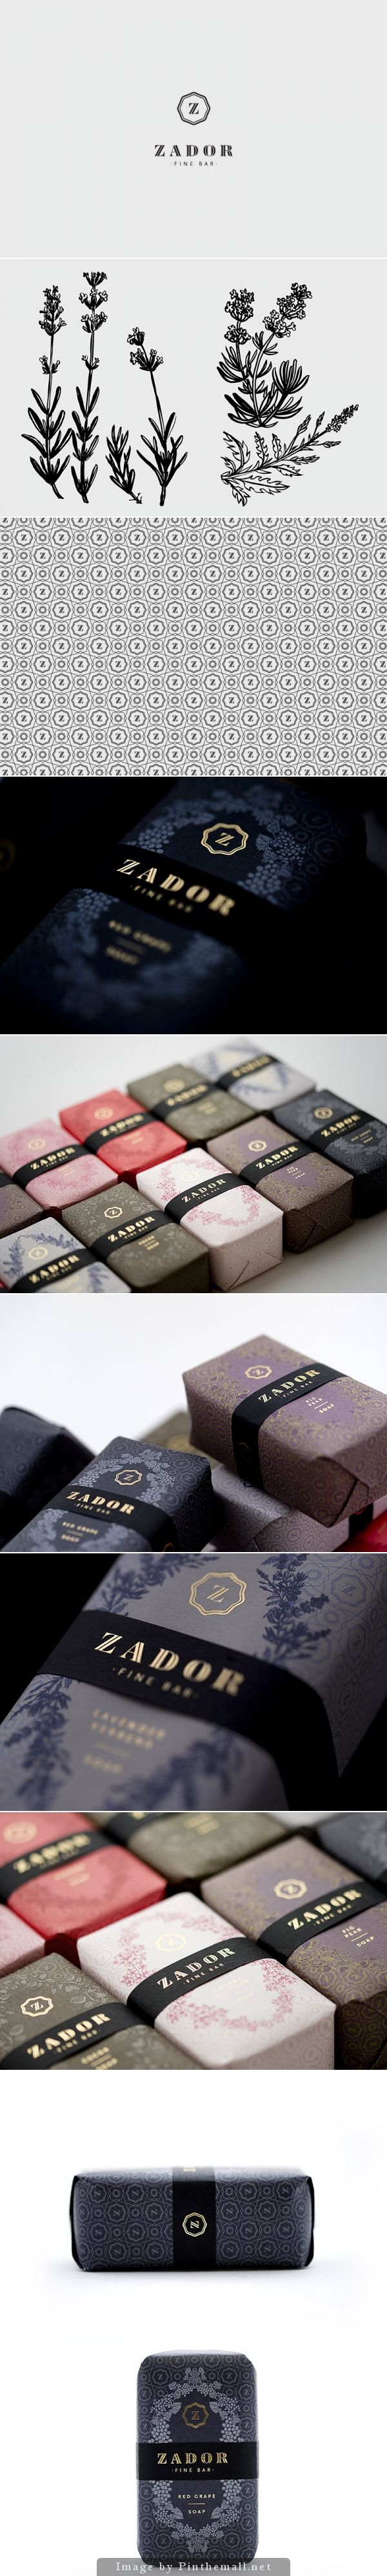 Soap Packaging 'Zador' by Eszter Laki